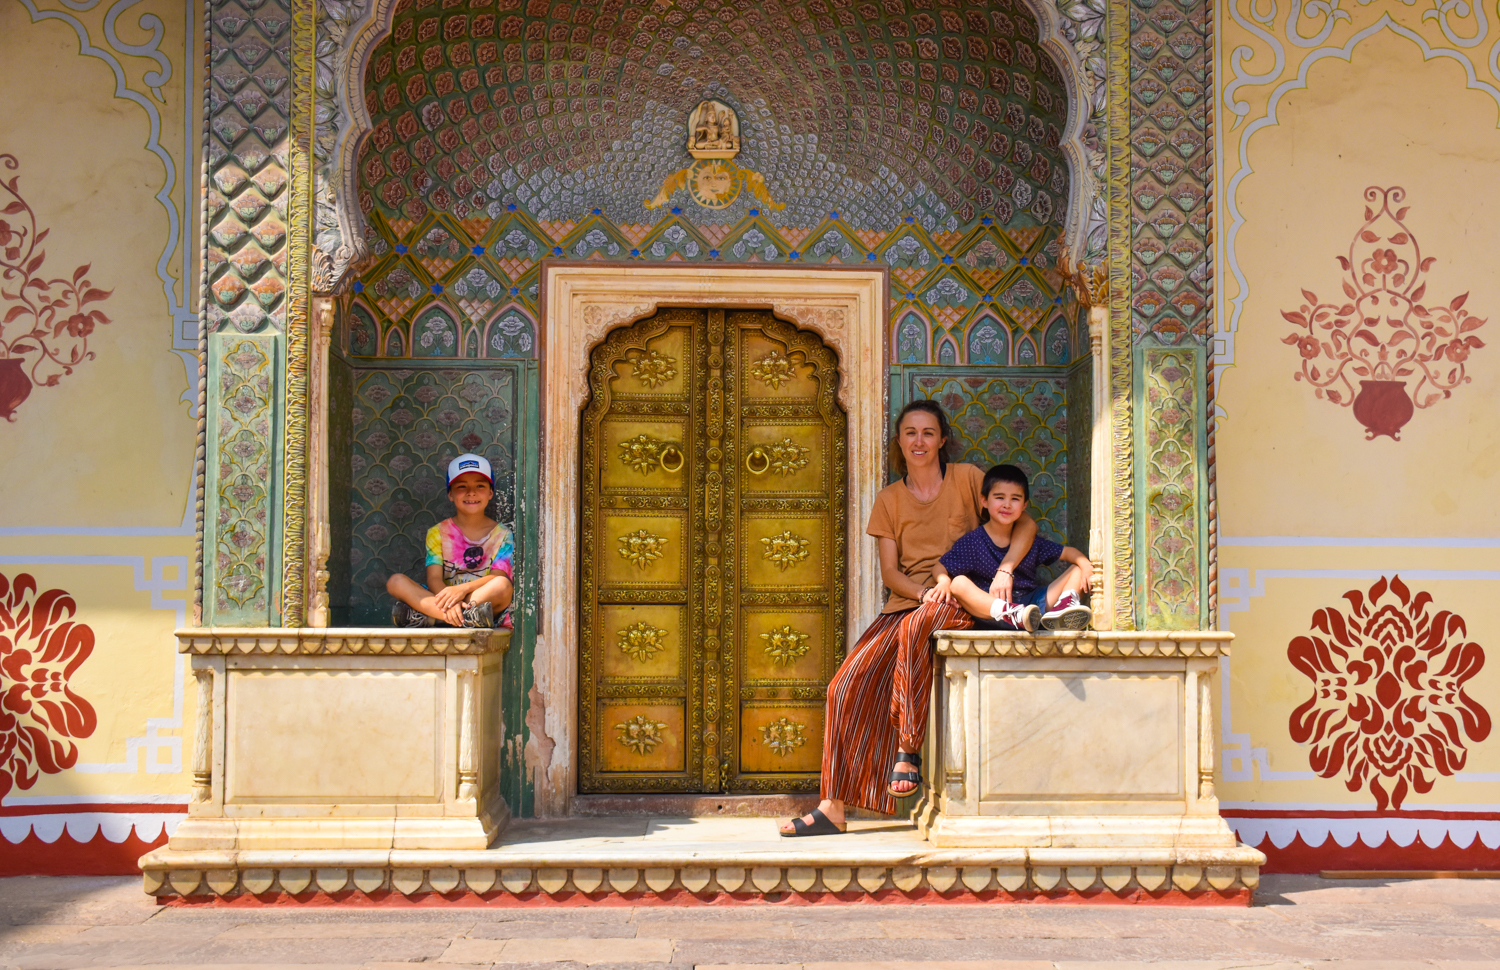 Family at the Jaipur City Palace India